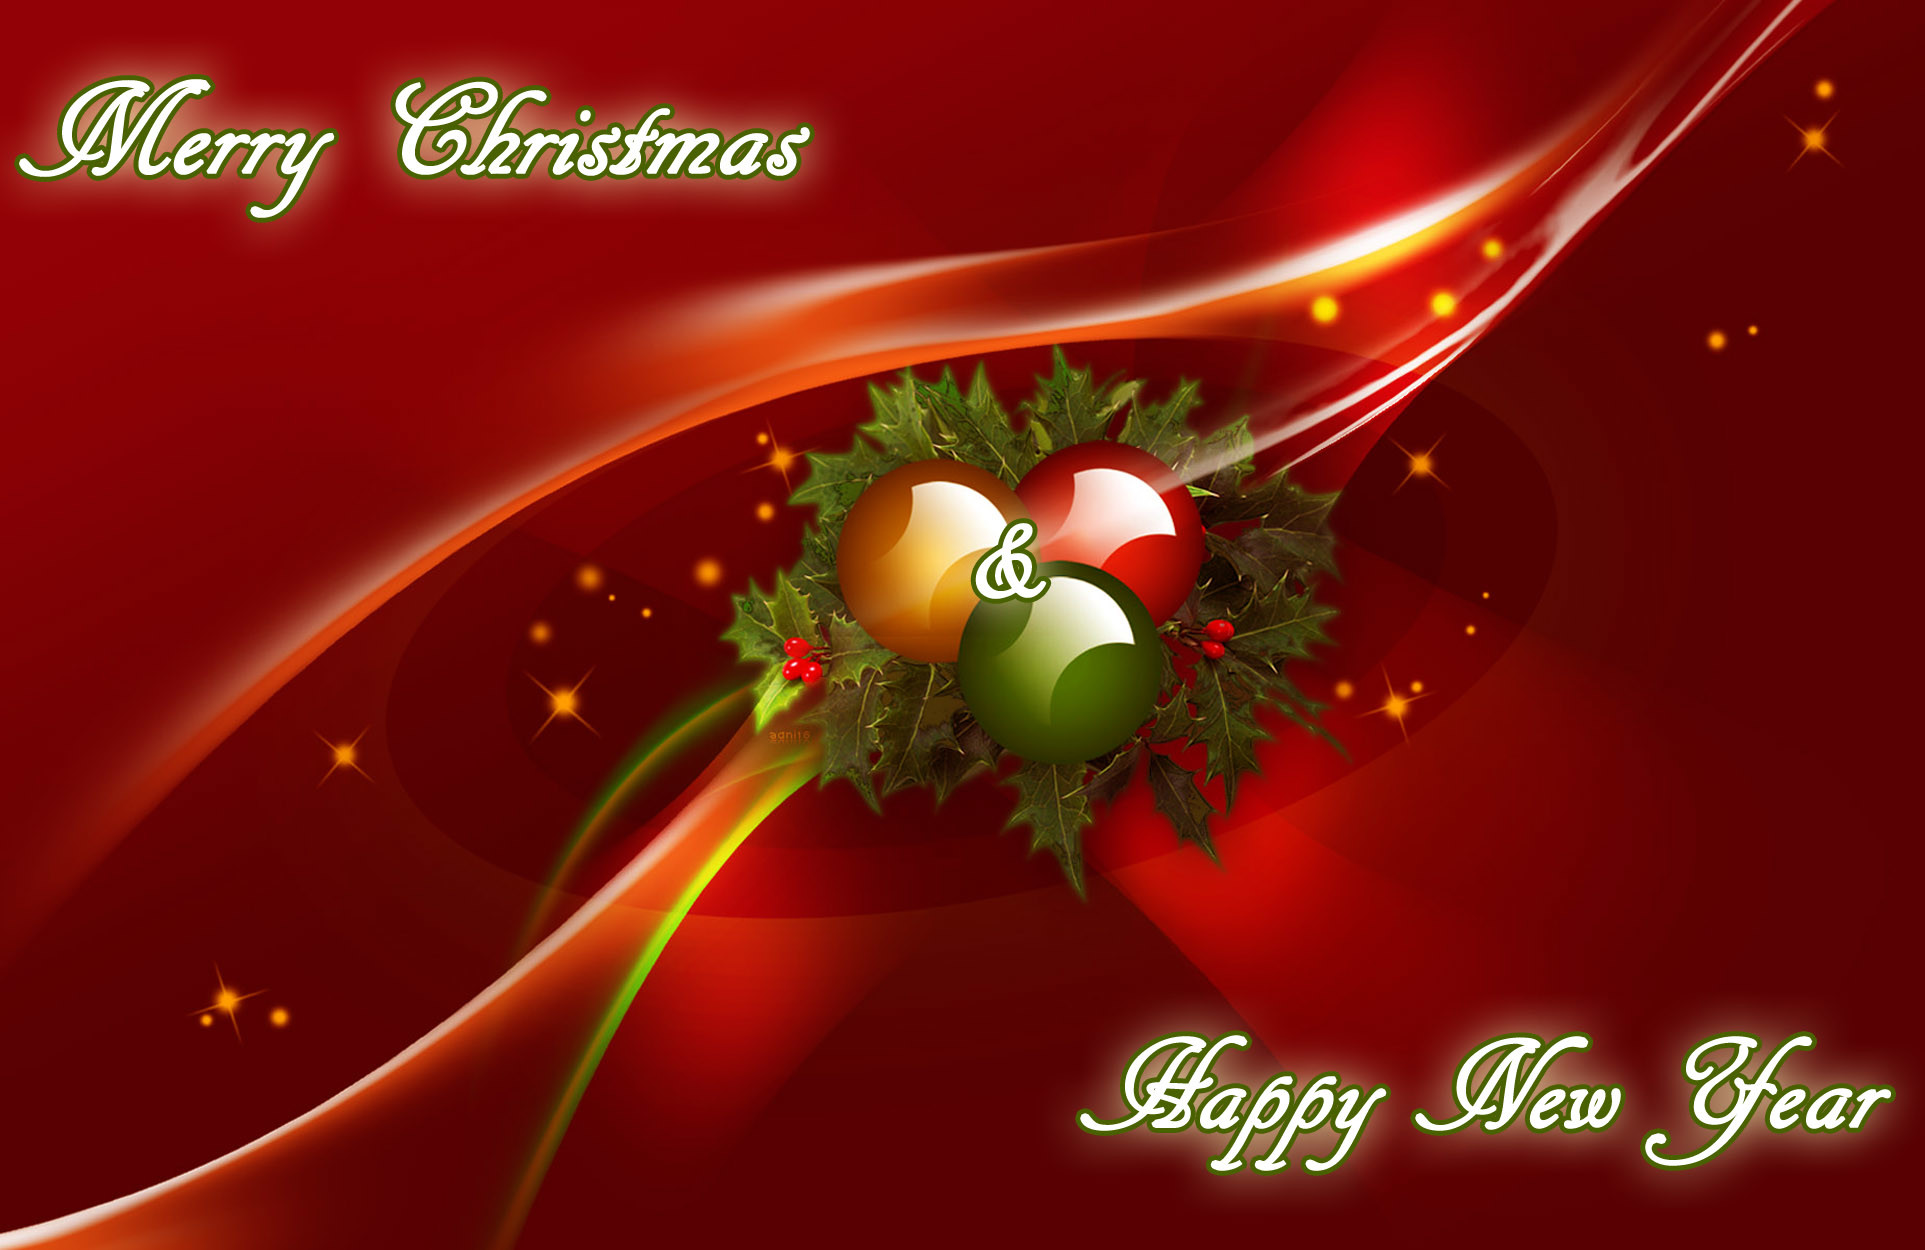 New Year 2014 Christmas 2013 Greeting Cards Ecards King Images